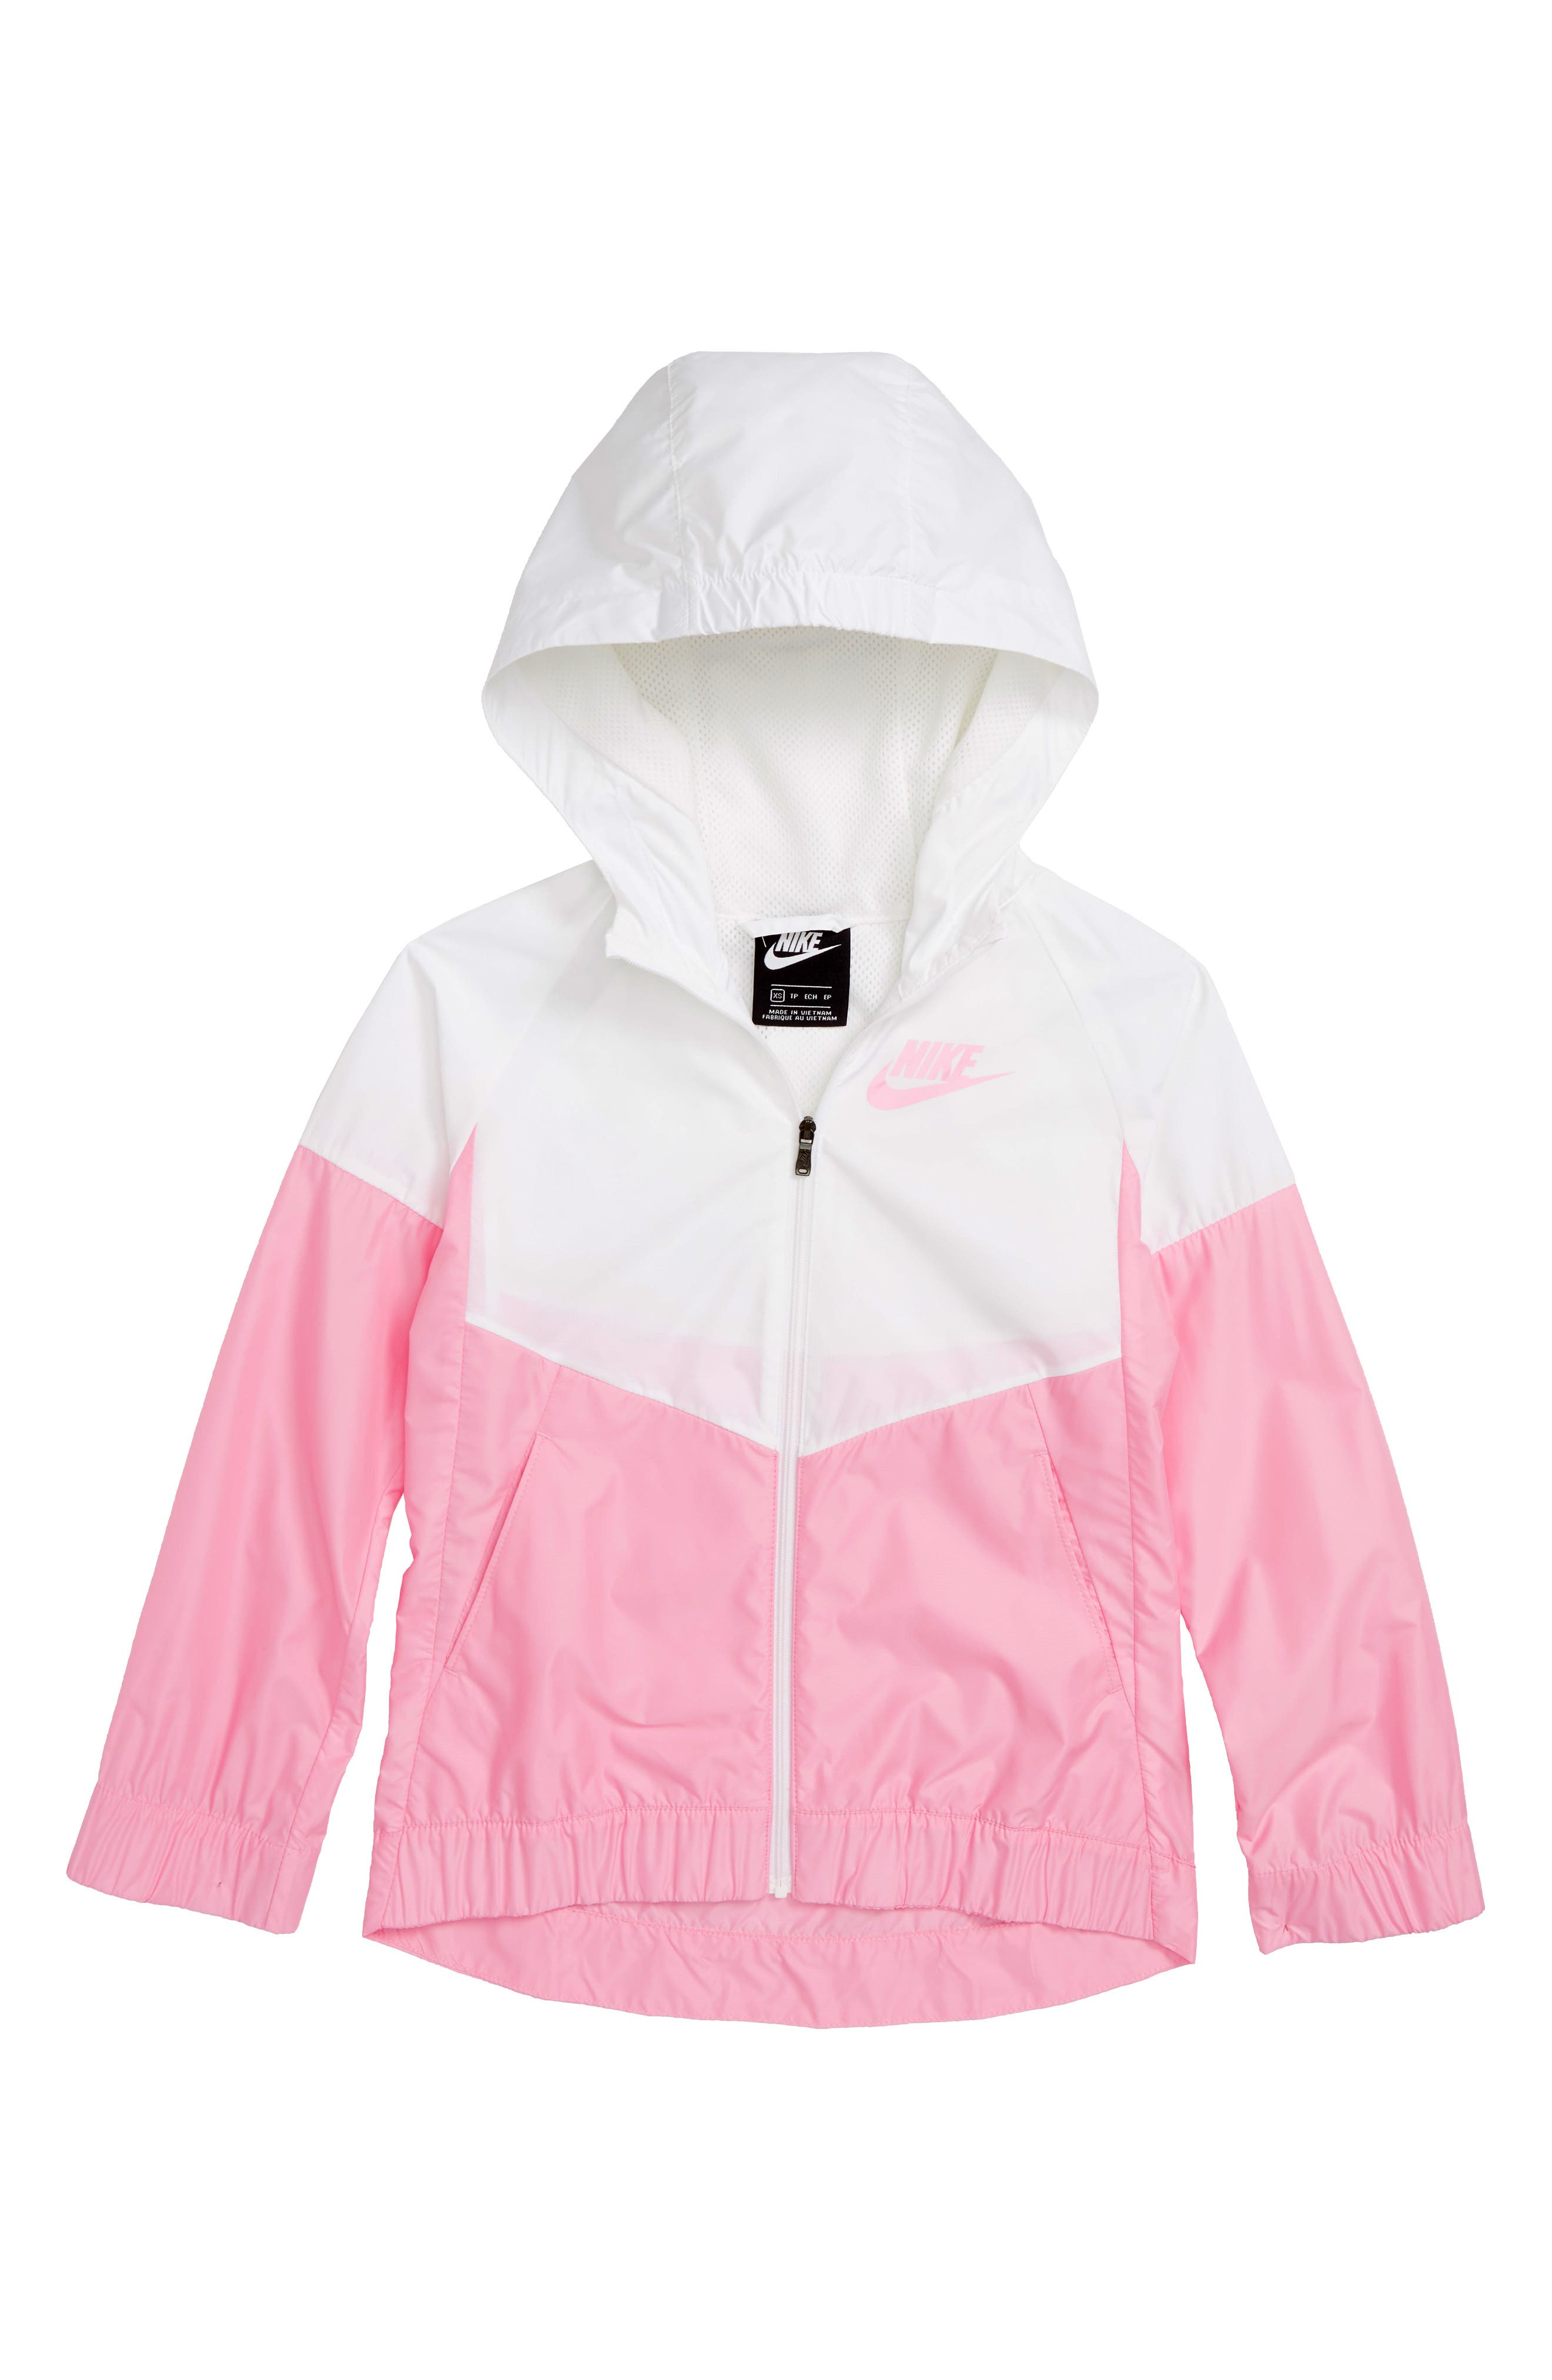 Sportswear Windrunner Jacket,                             Main thumbnail 1, color,                             White/ Pink/ Pink